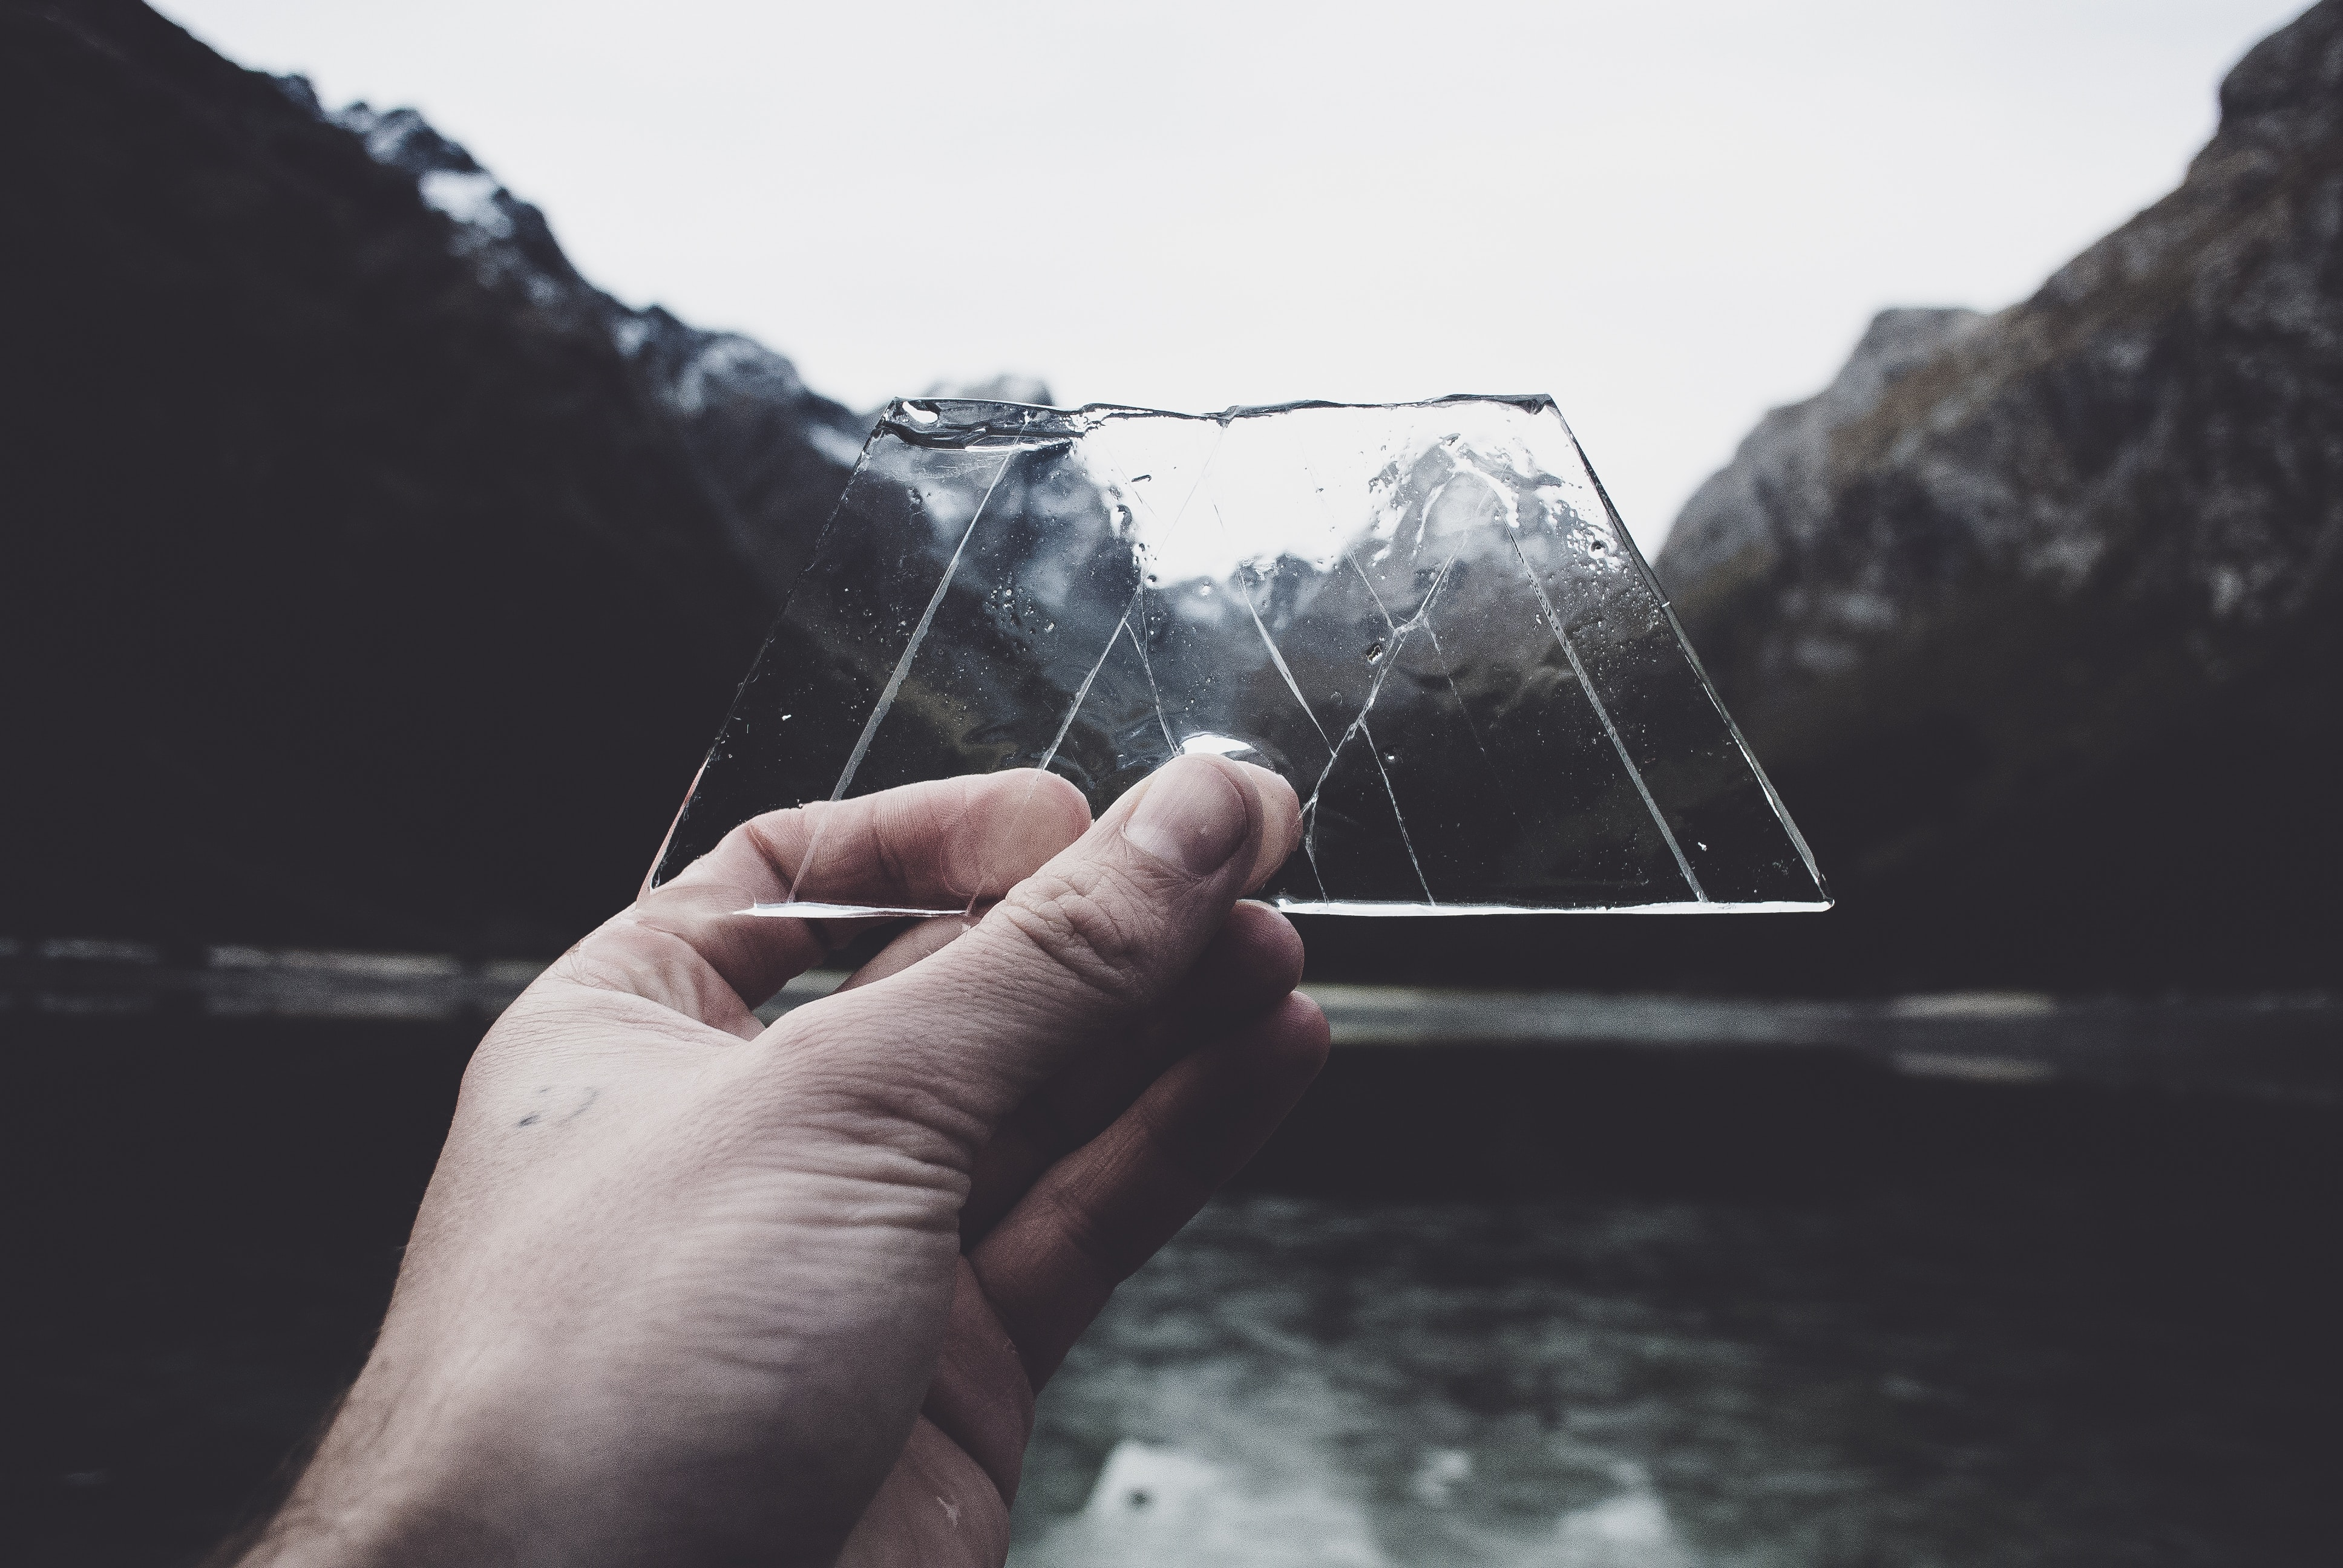 hand holding ice in front of mountains